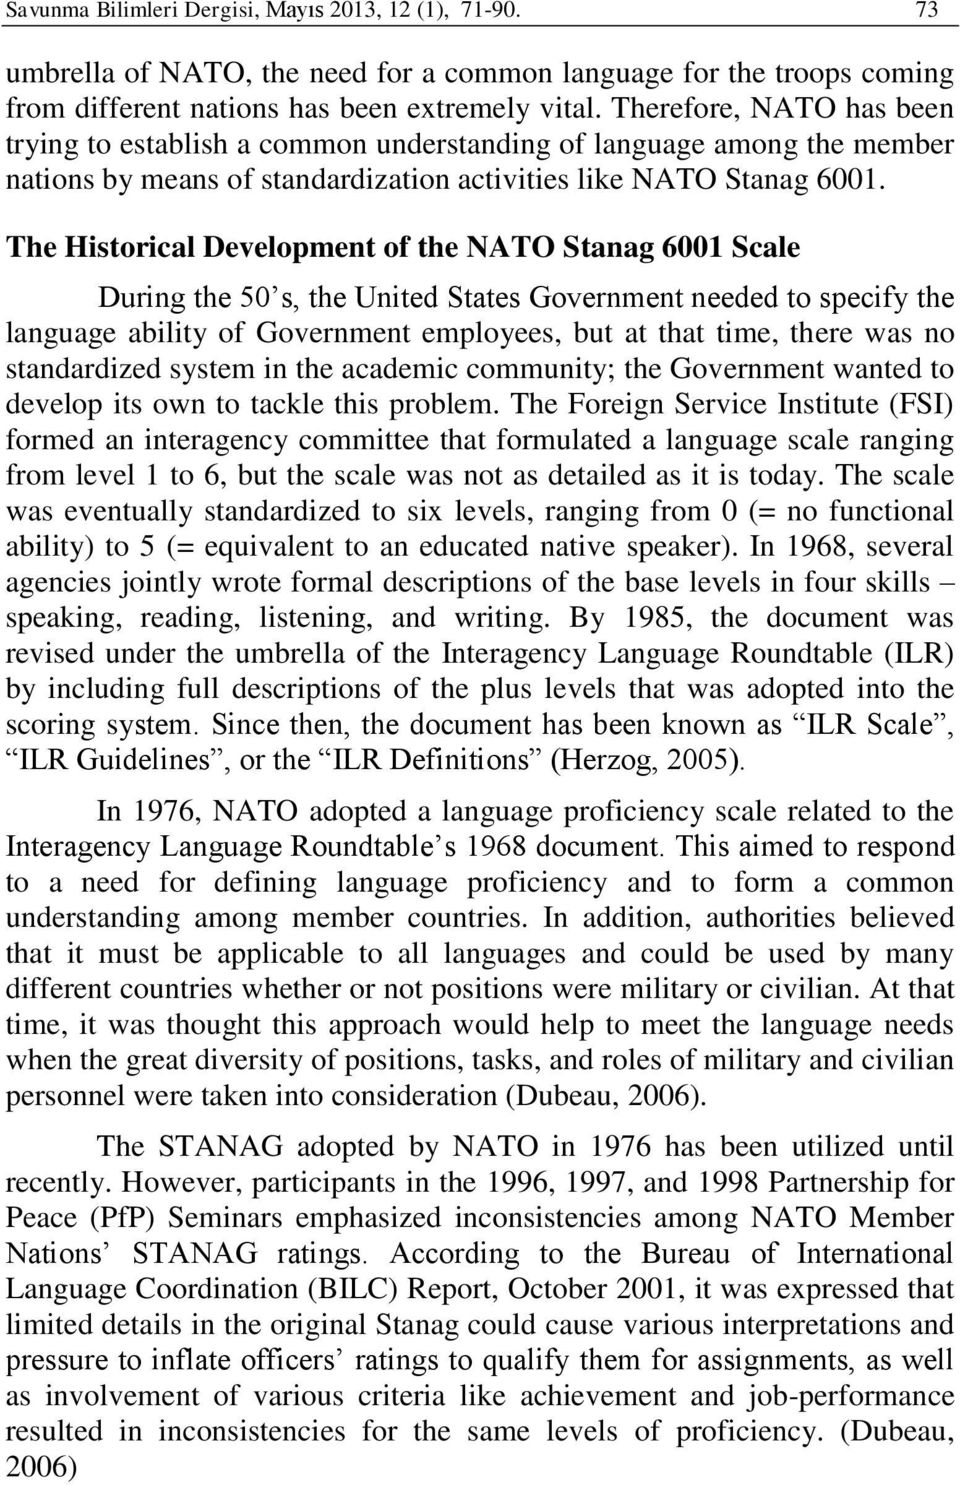 The Historical Development of the NATO Stanag 6001 Scale During the 50 s, the United States Government needed to specify the language ability of Government employees, but at that time, there was no